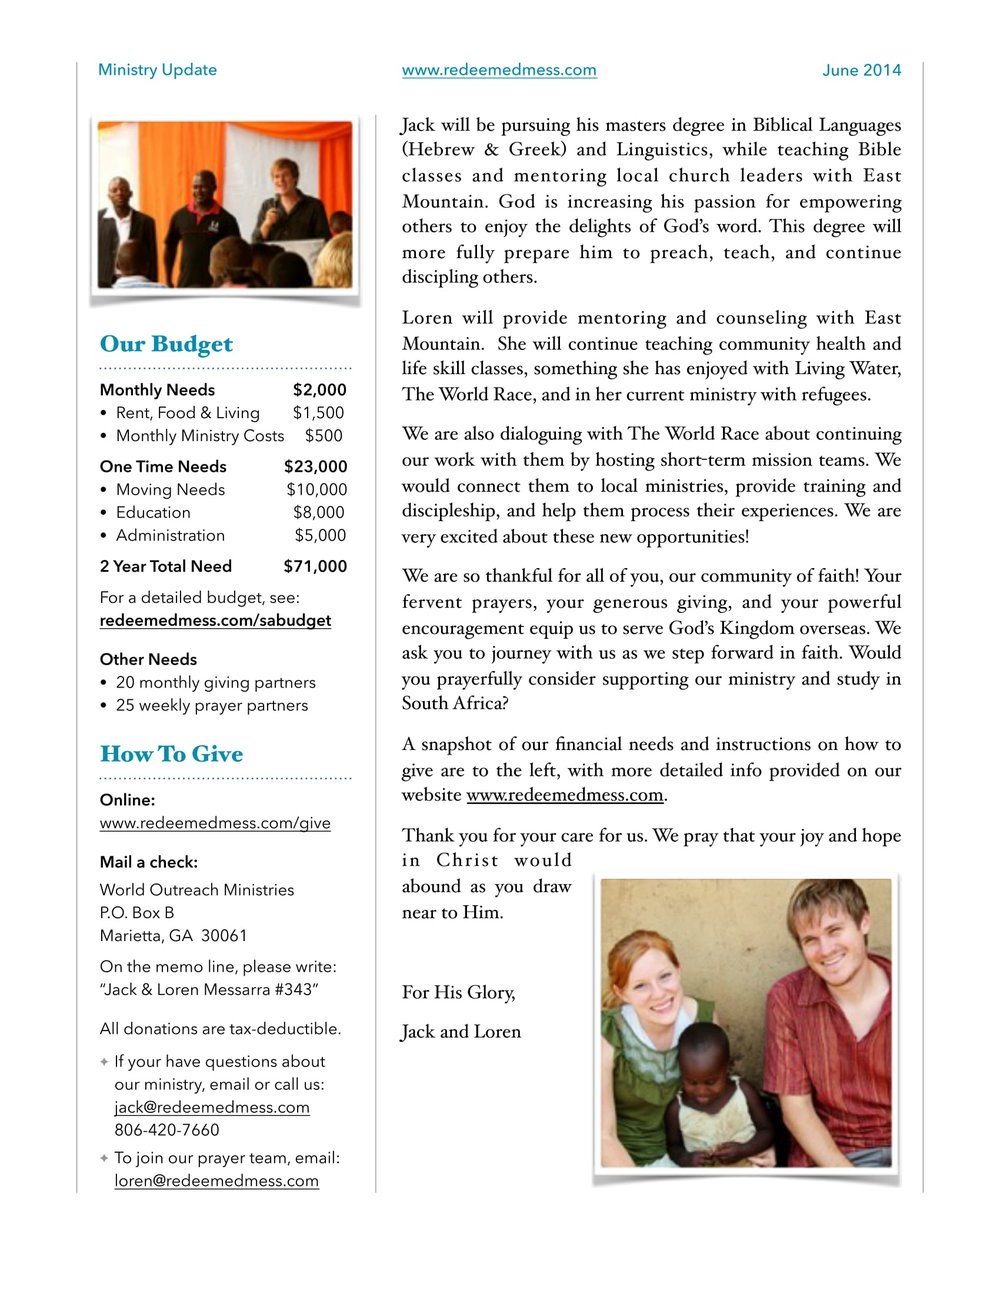 2014 Annual Review June Letter Messarra -2.jpg